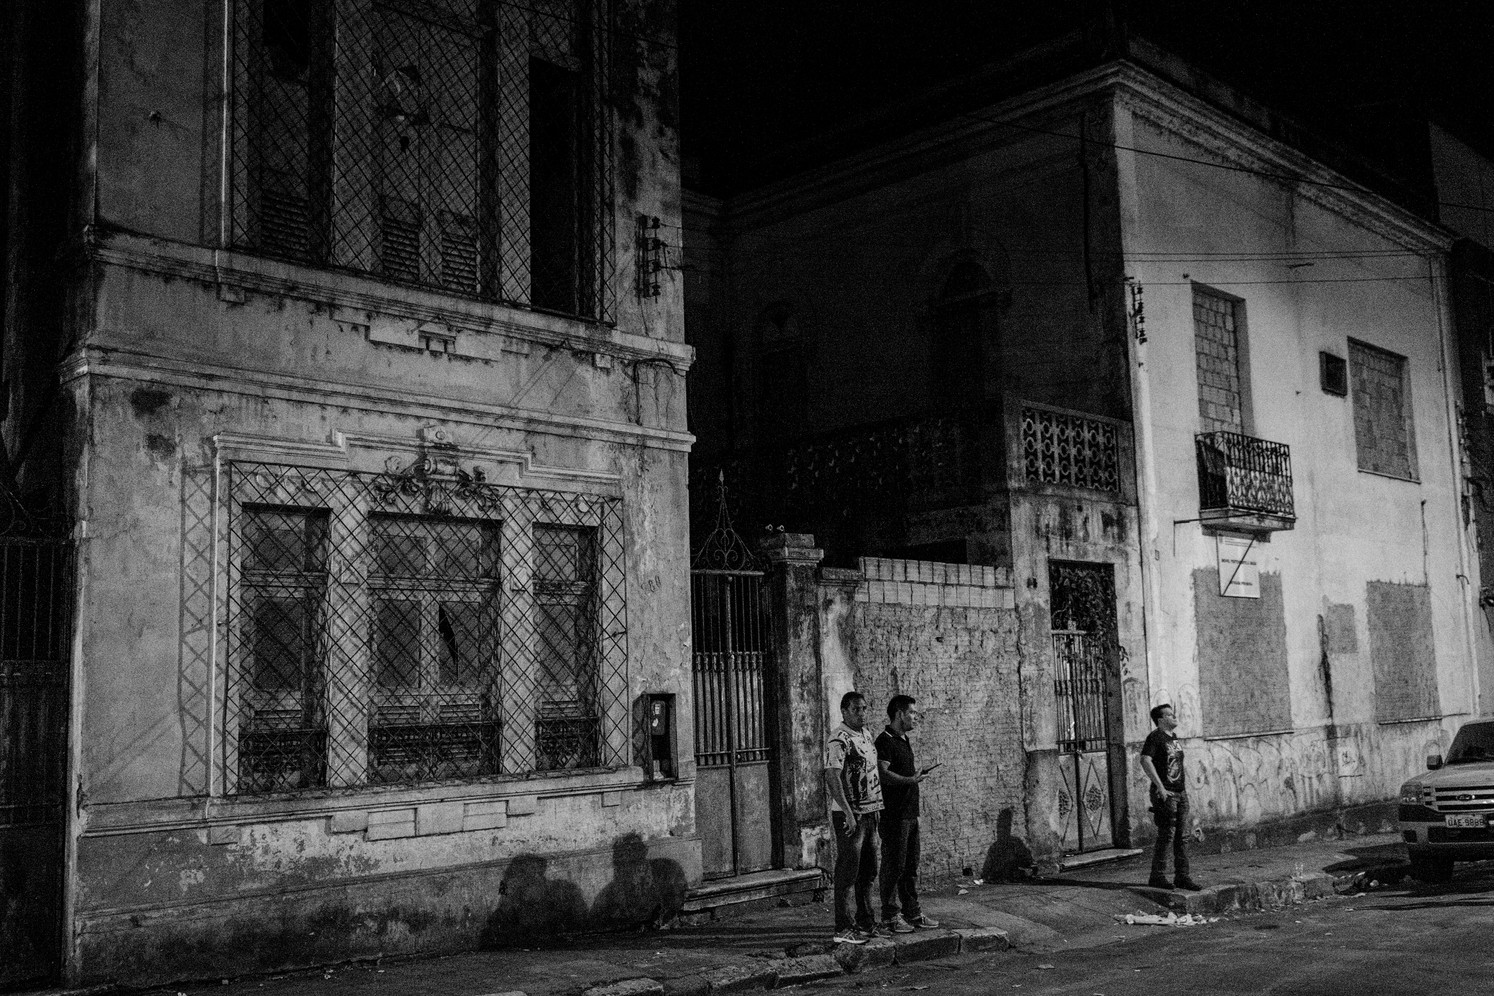 Undercover police agents monitor a street duiring an anti-drug operation in Manaus.